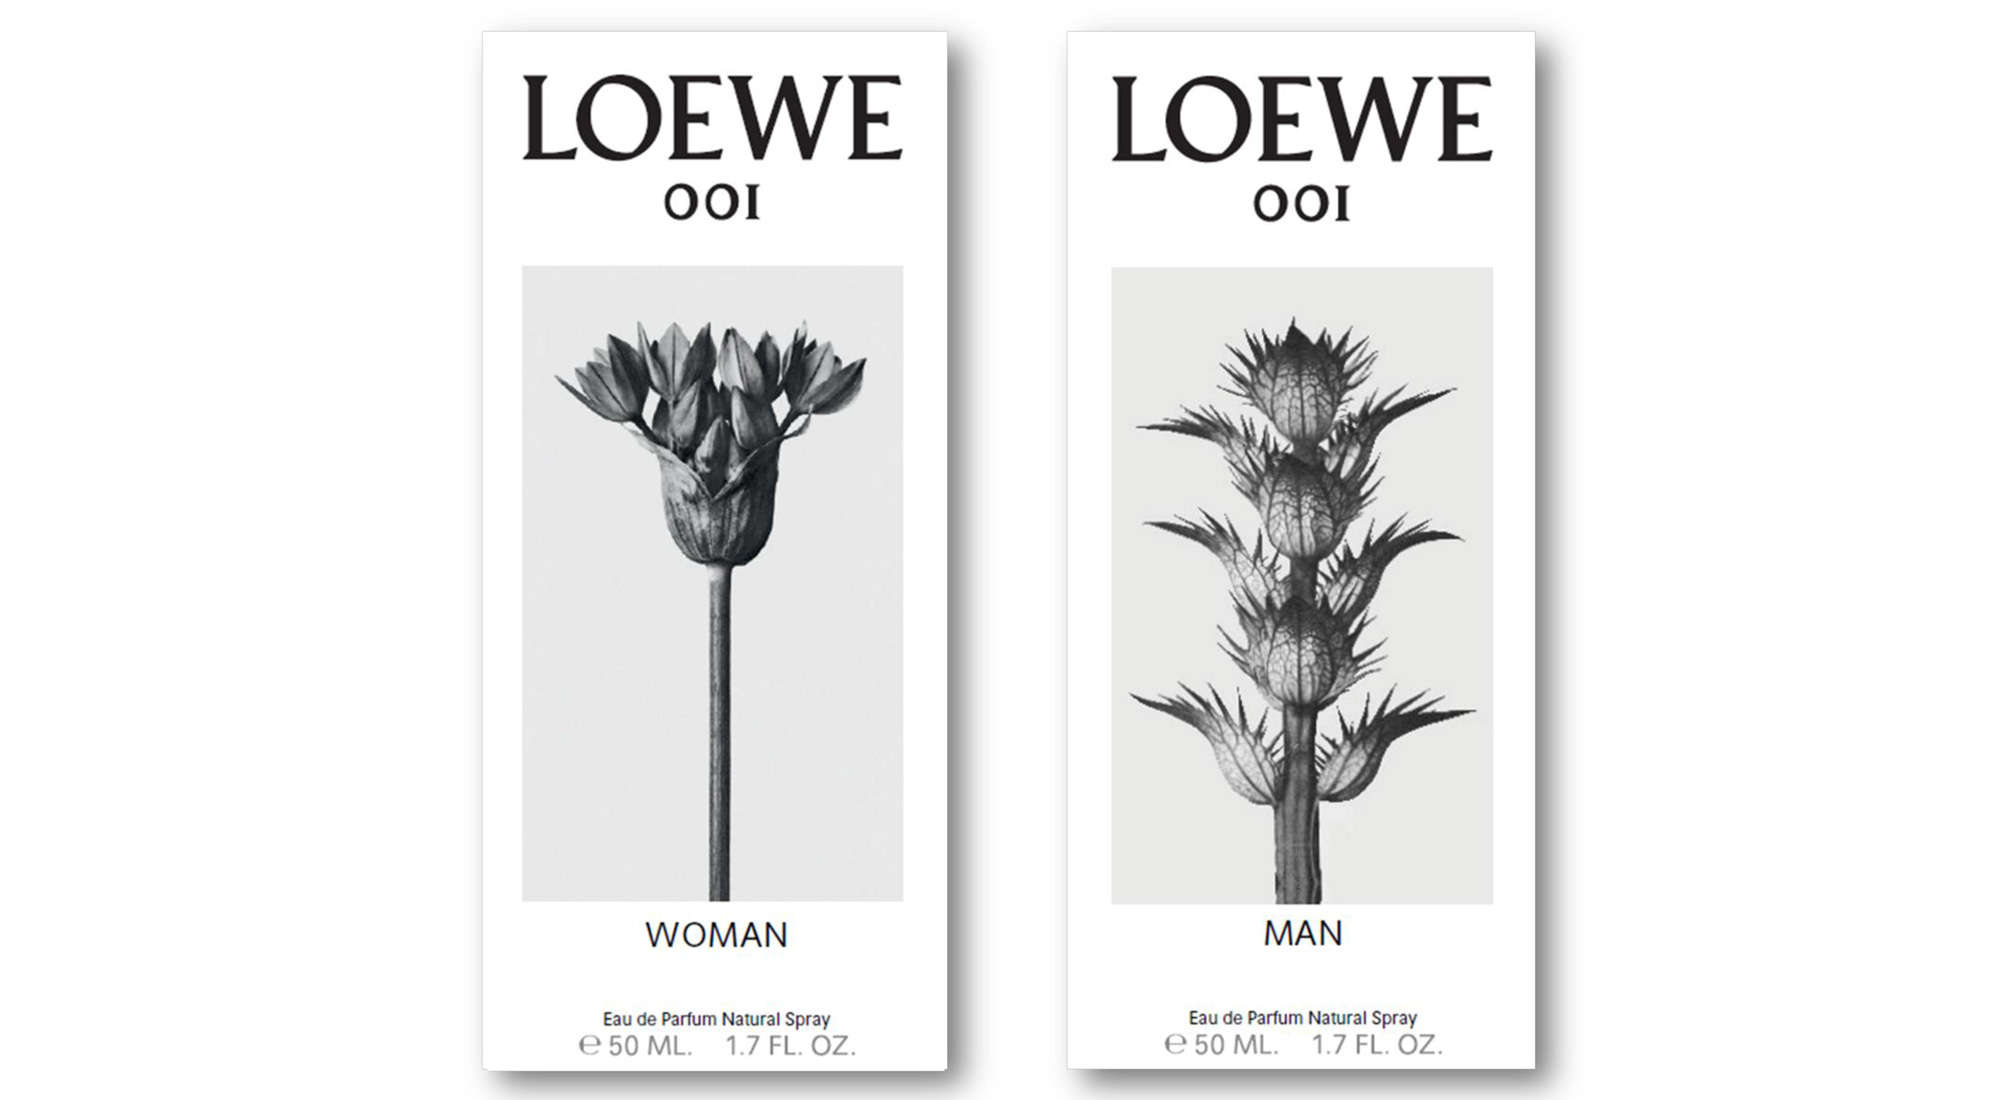 loewes-new-fragrances-for-him-and-her-pack-2000x1100-2000x1100